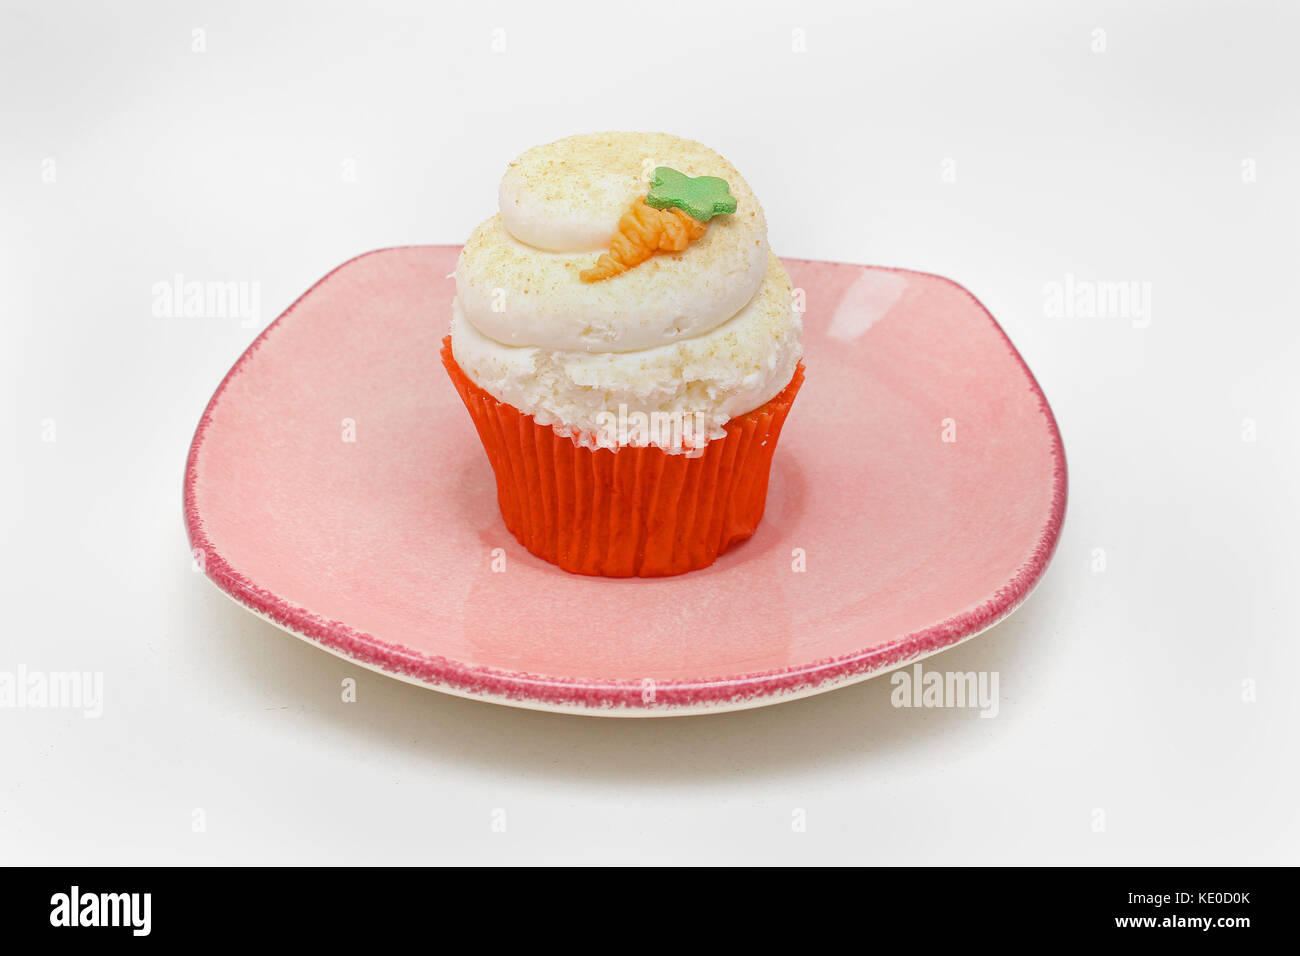 Cupcake dessert on pink plate with carrot decoration - Stock Image